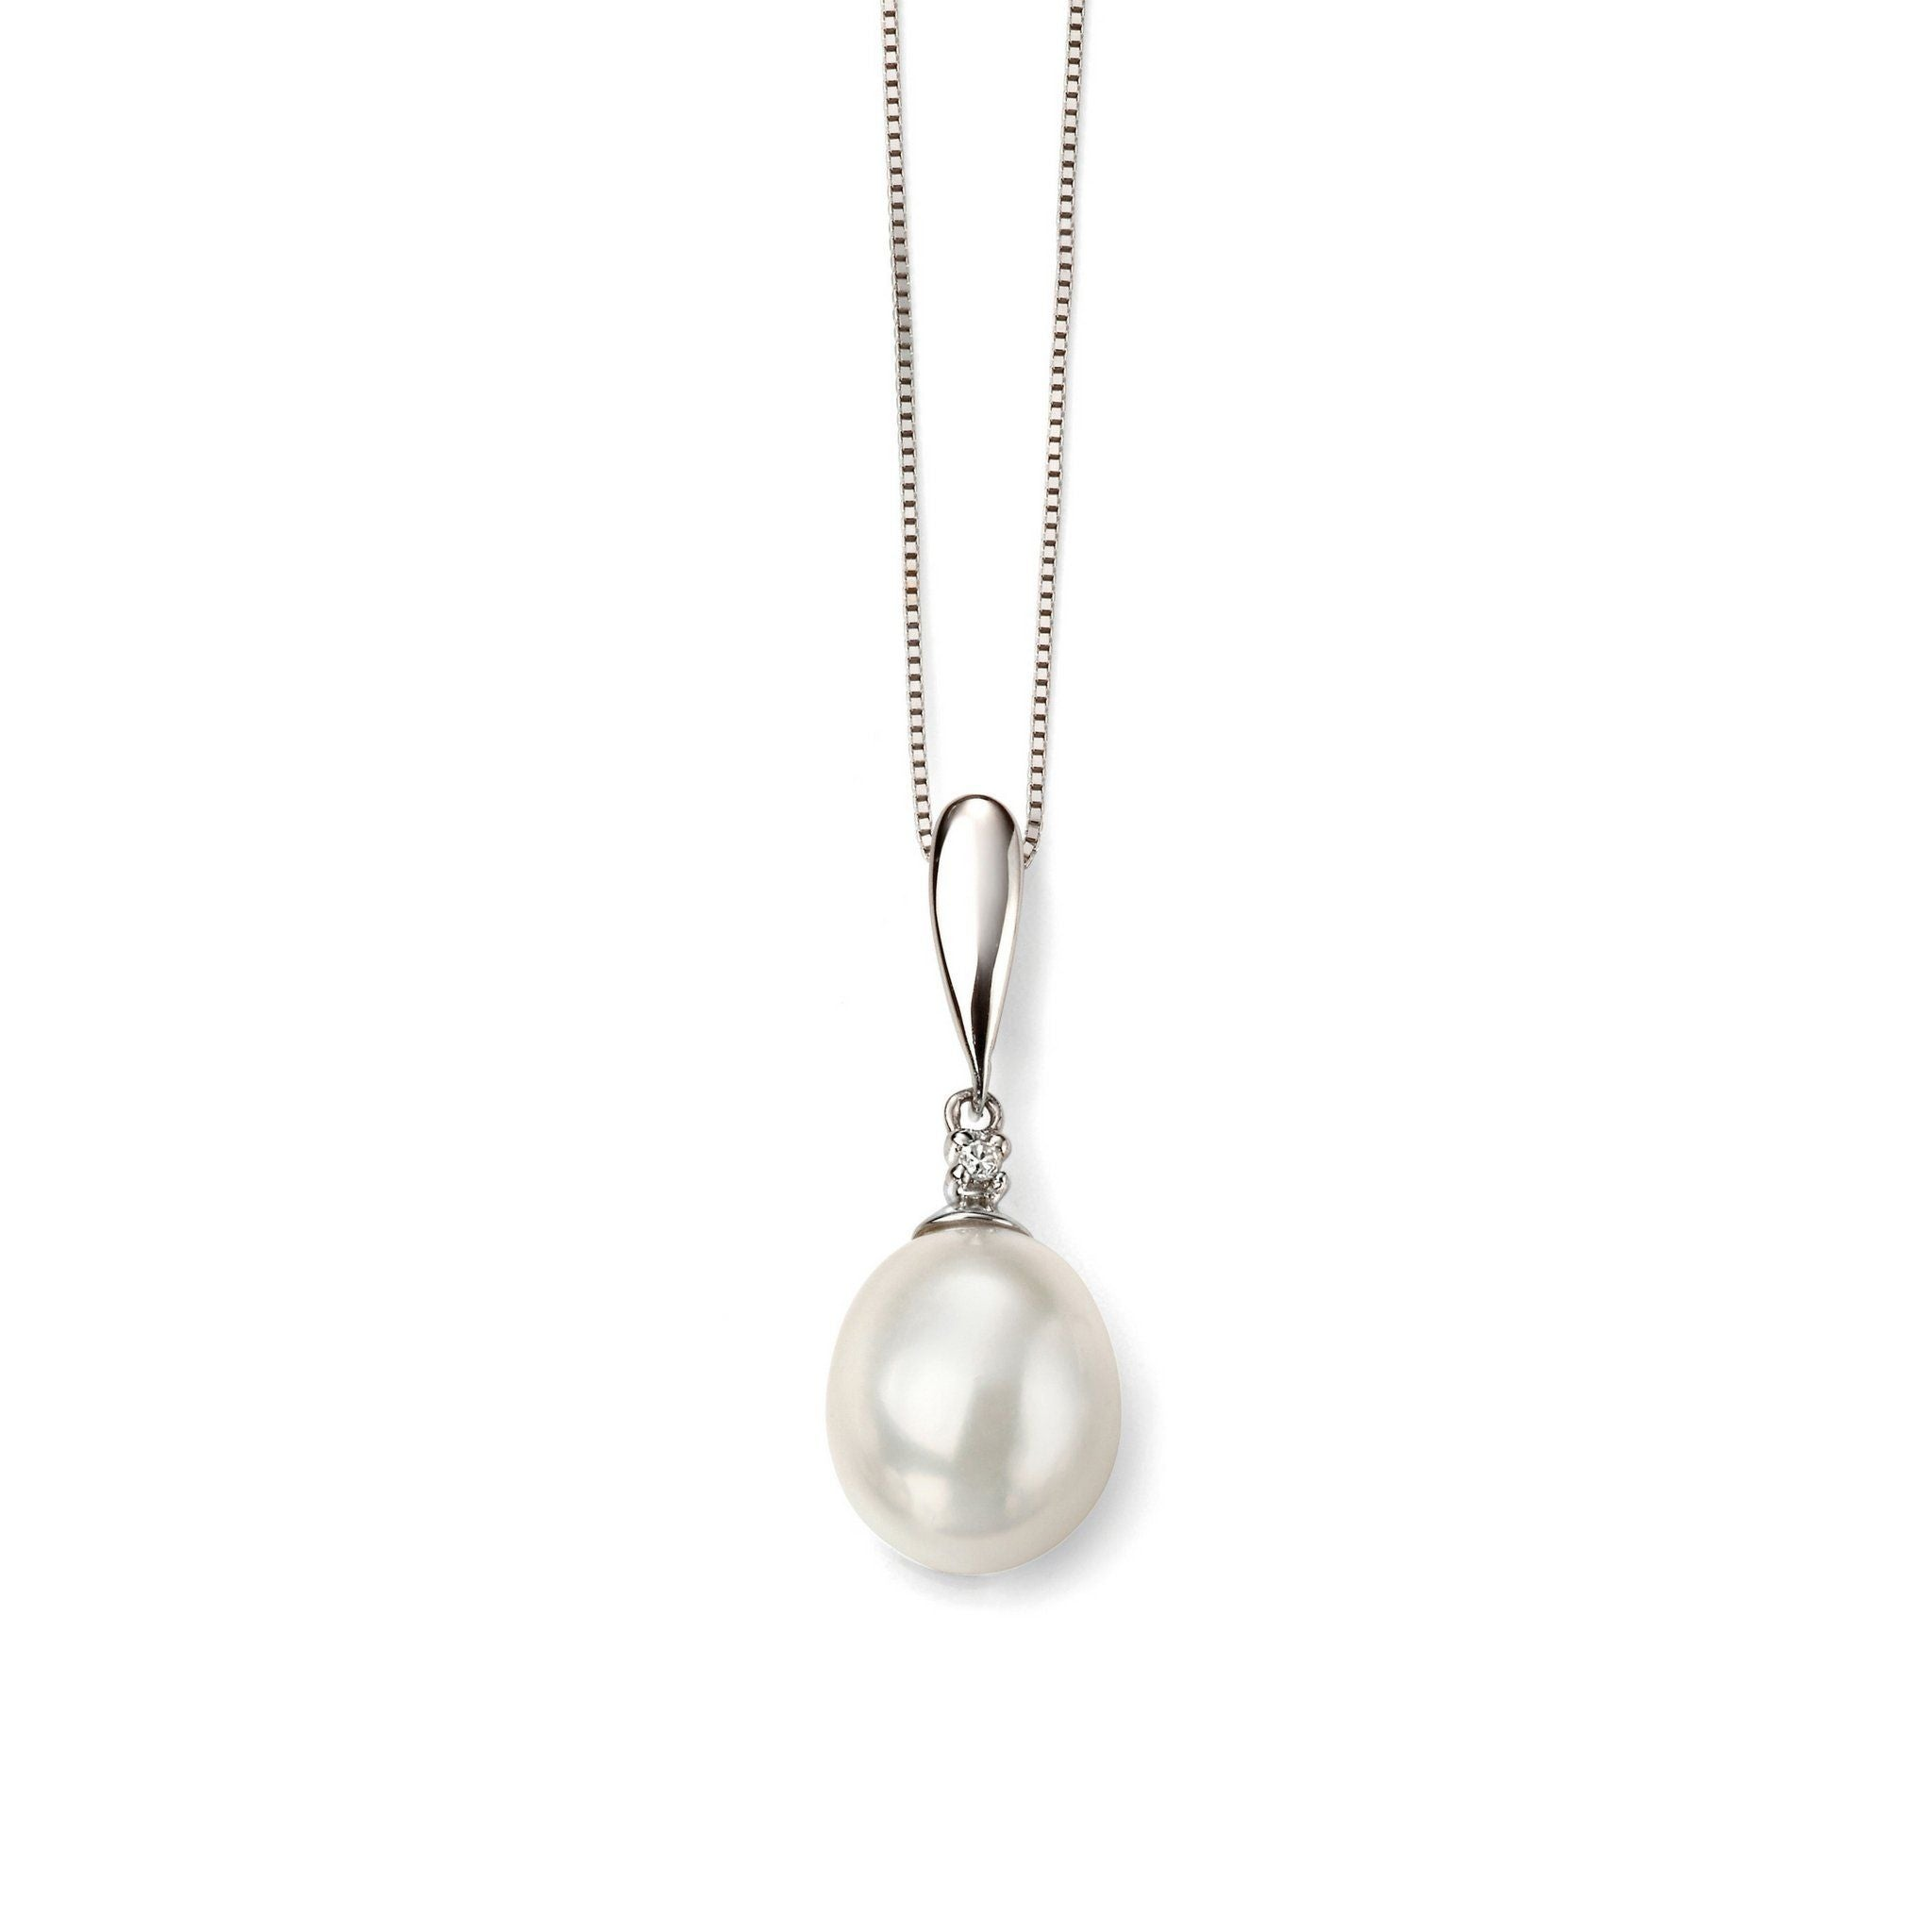 9ct White Gold Pearl & Diamond Pendant